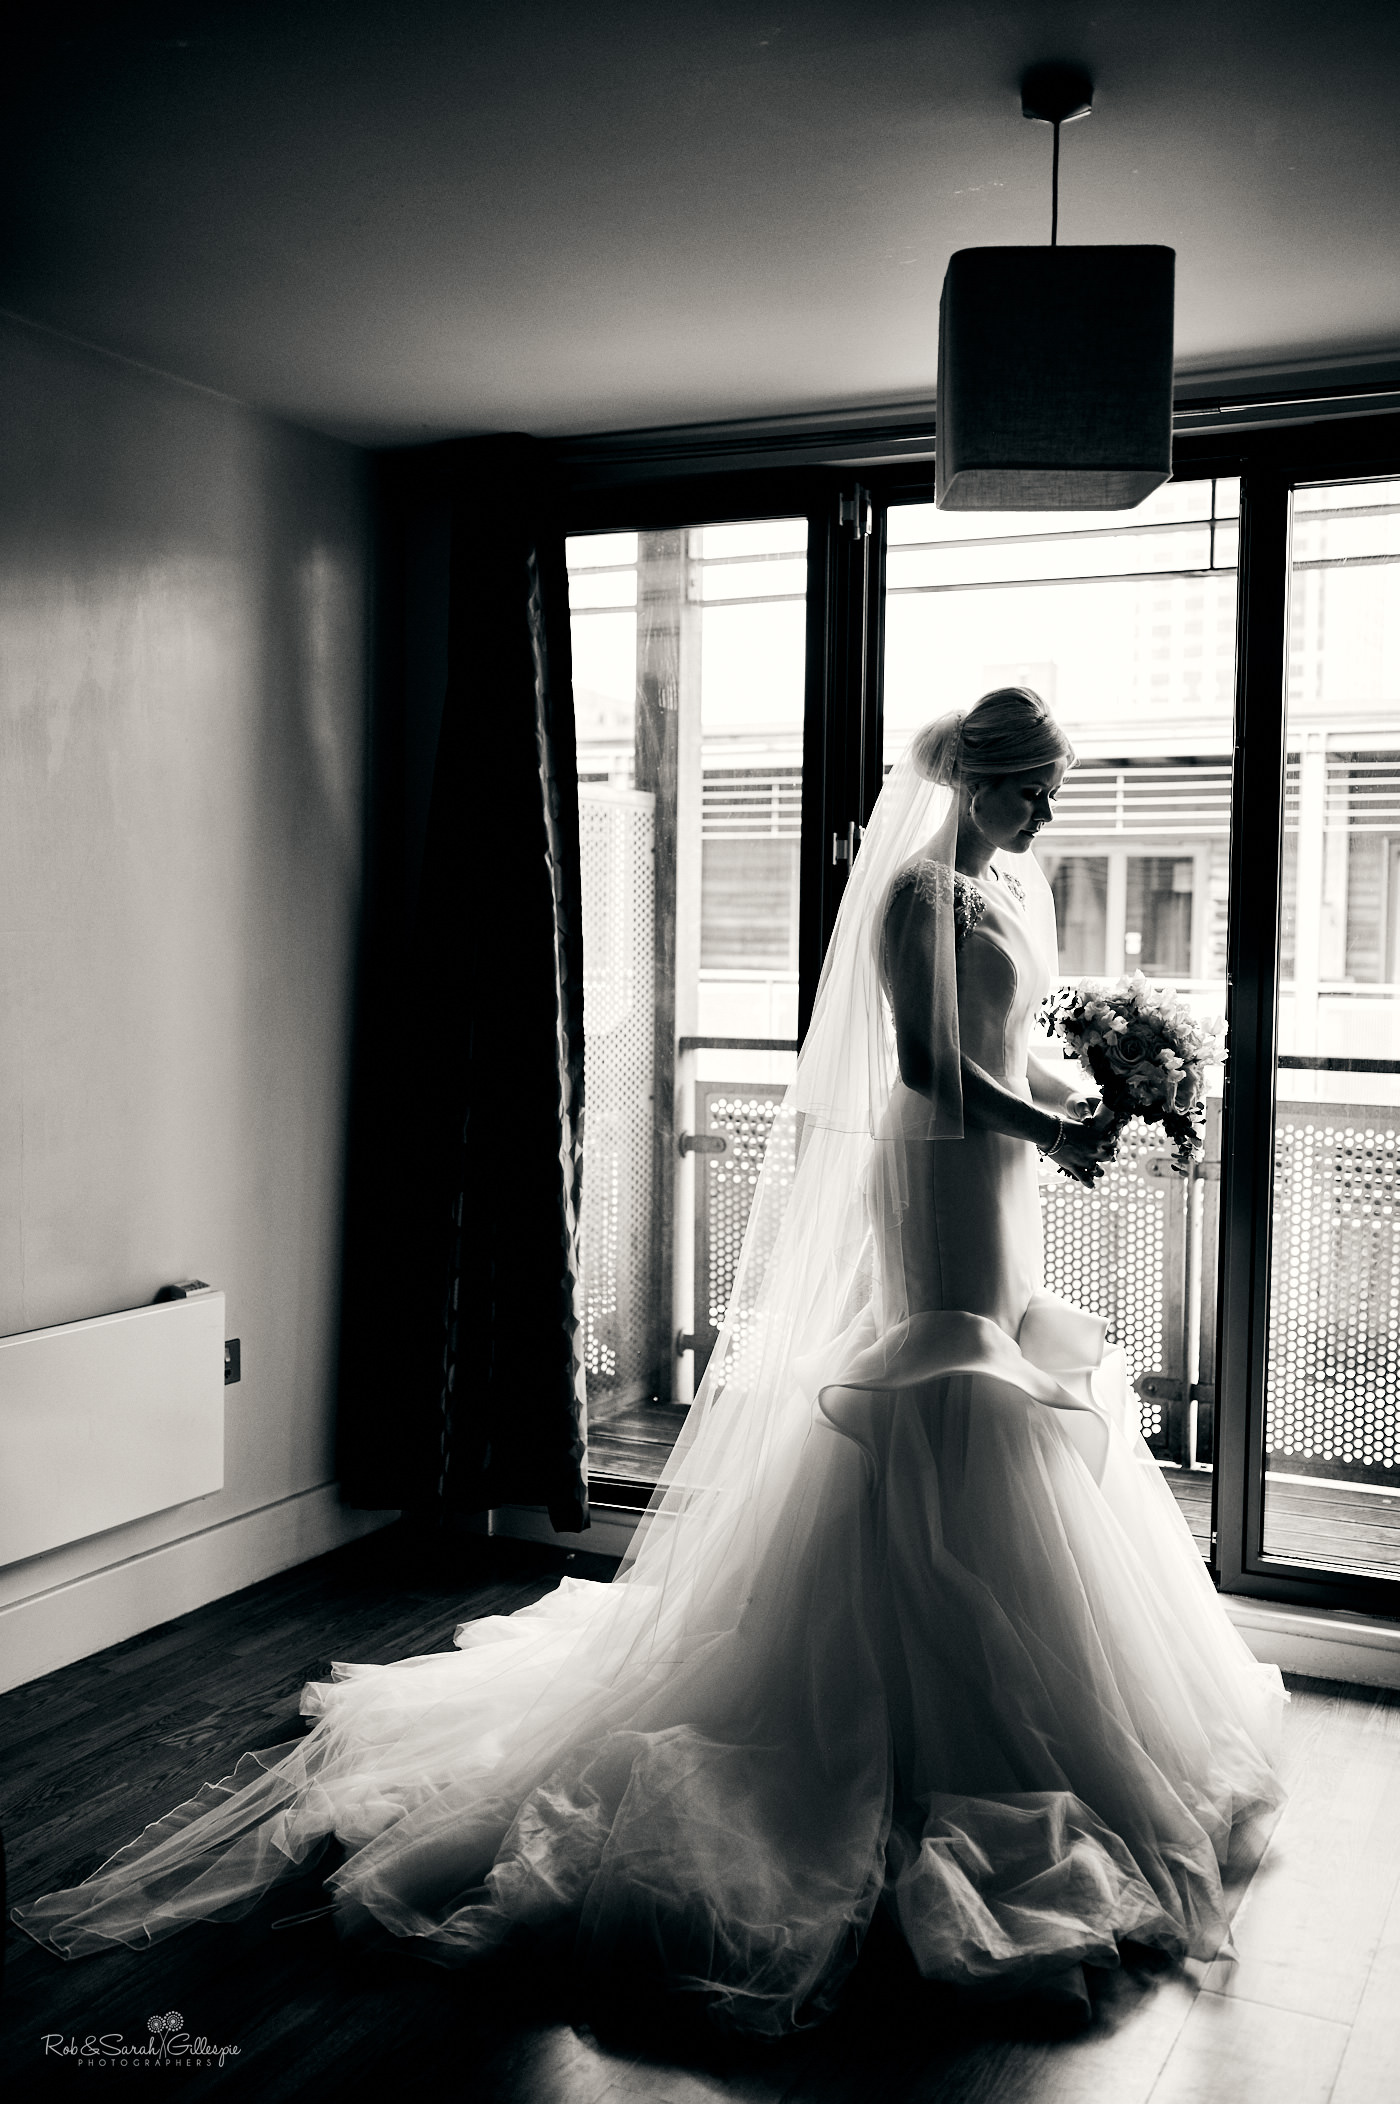 Bride silhouette in beautiful window light